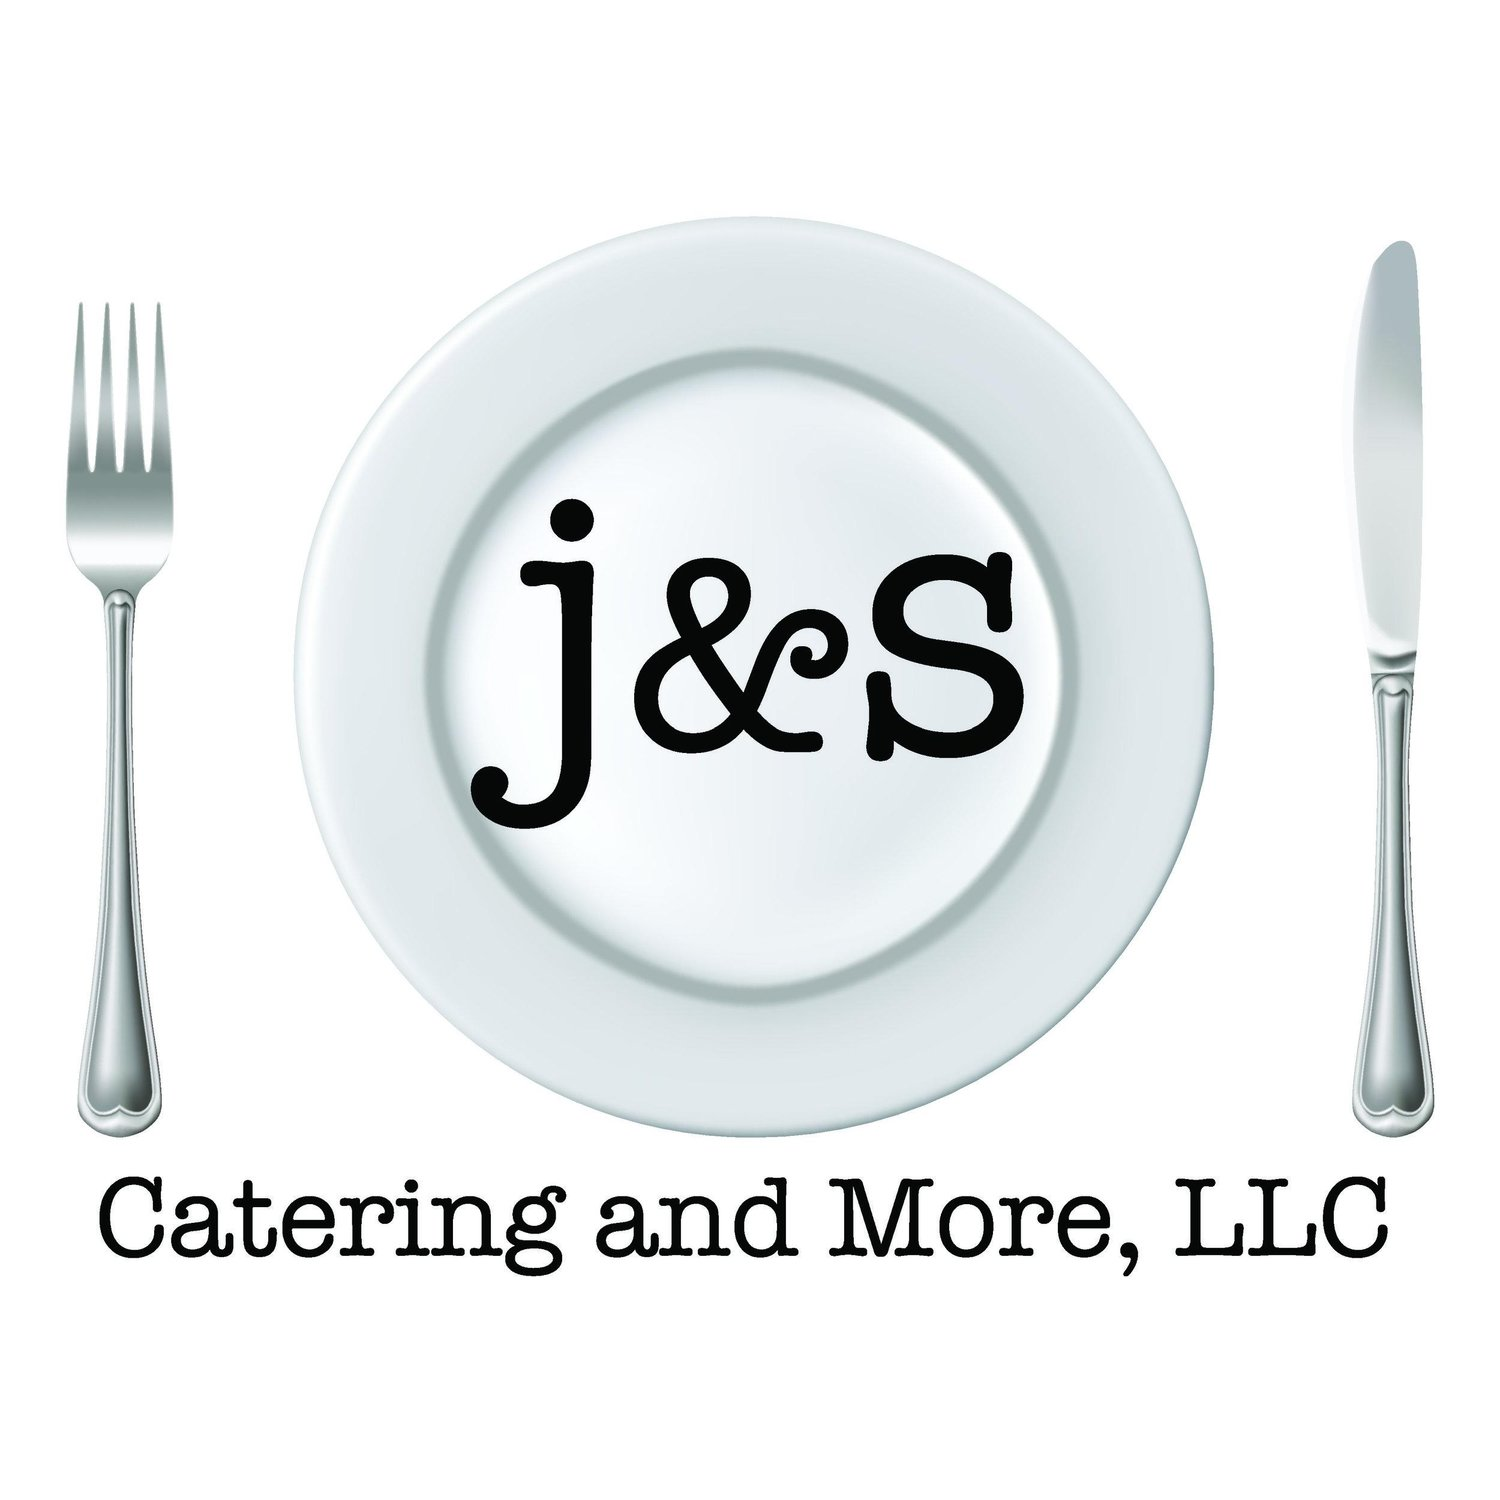 J&S Catering and More, LLC